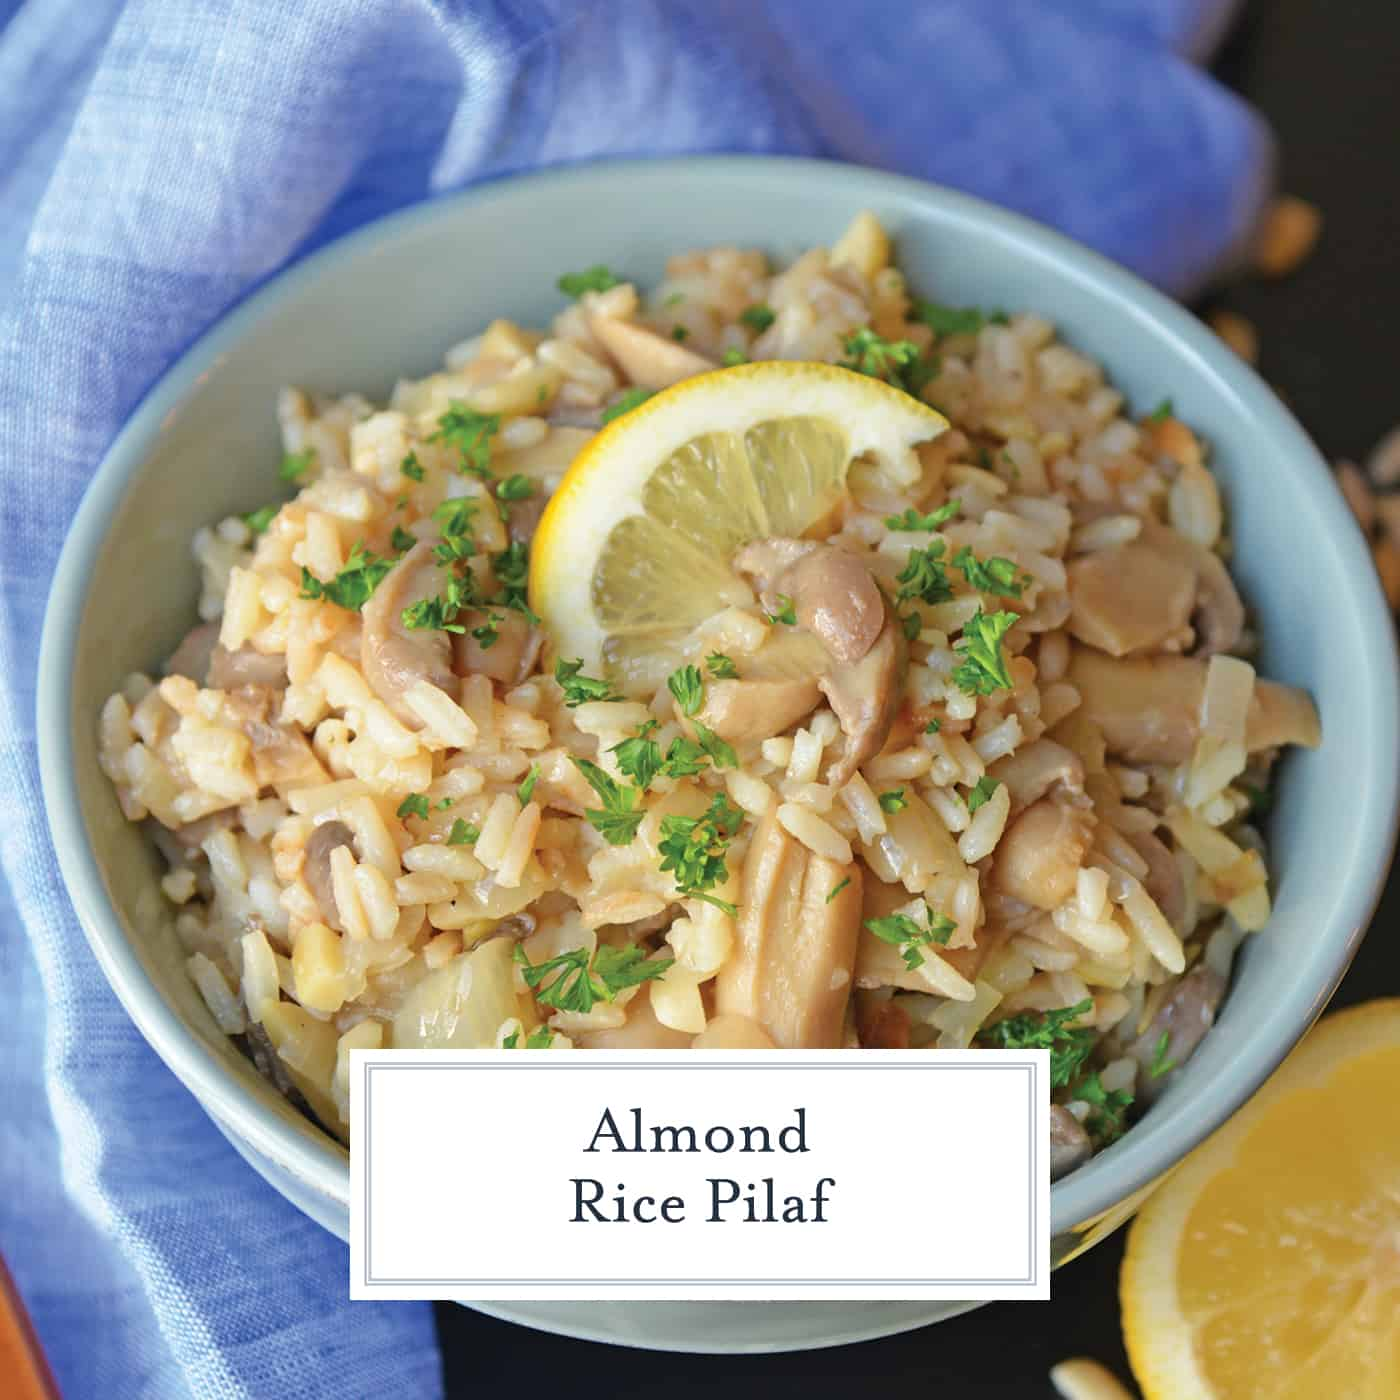 Almond Rice Pilaf is an easy side dish made with crunchy almonds, mushrooms and savory chicken broth and lemon juice to give it loads of flavor! An easy rice recipe the whole family will love. #ricepilafrecipe #easysidedish www.savoryexperiments.com